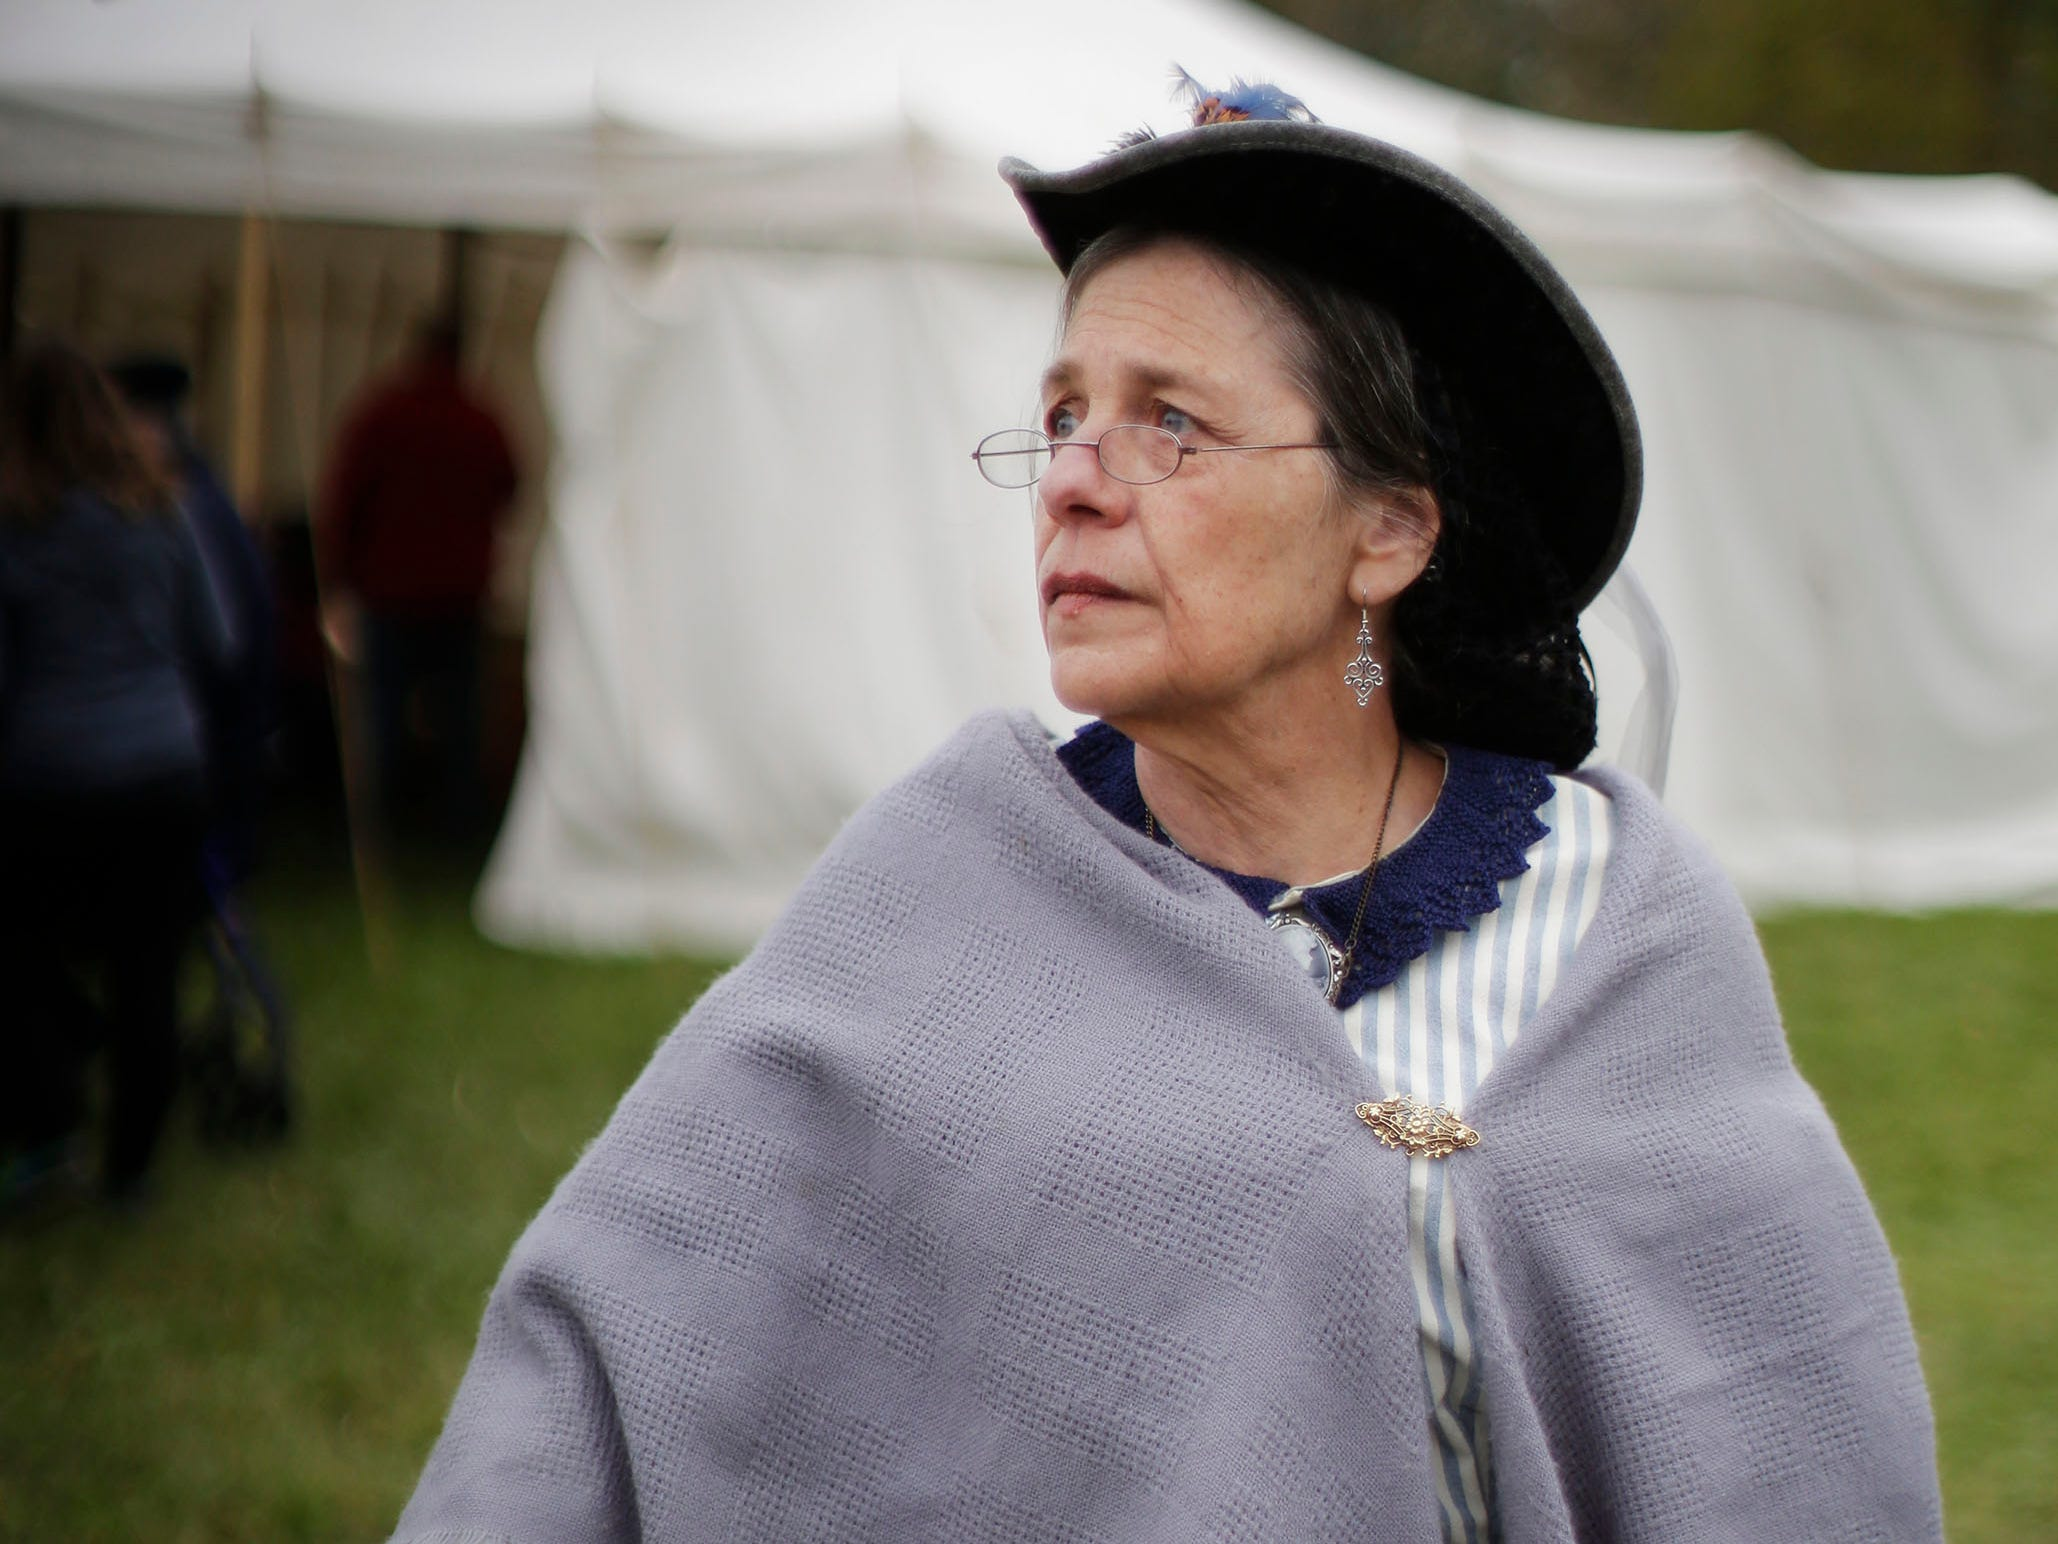 Kerry Kearney of Menomonee Falls wore an 1860s style dress during the Civil War Weekend, Saturday September 29, 2018, in Greenbush, Wis.